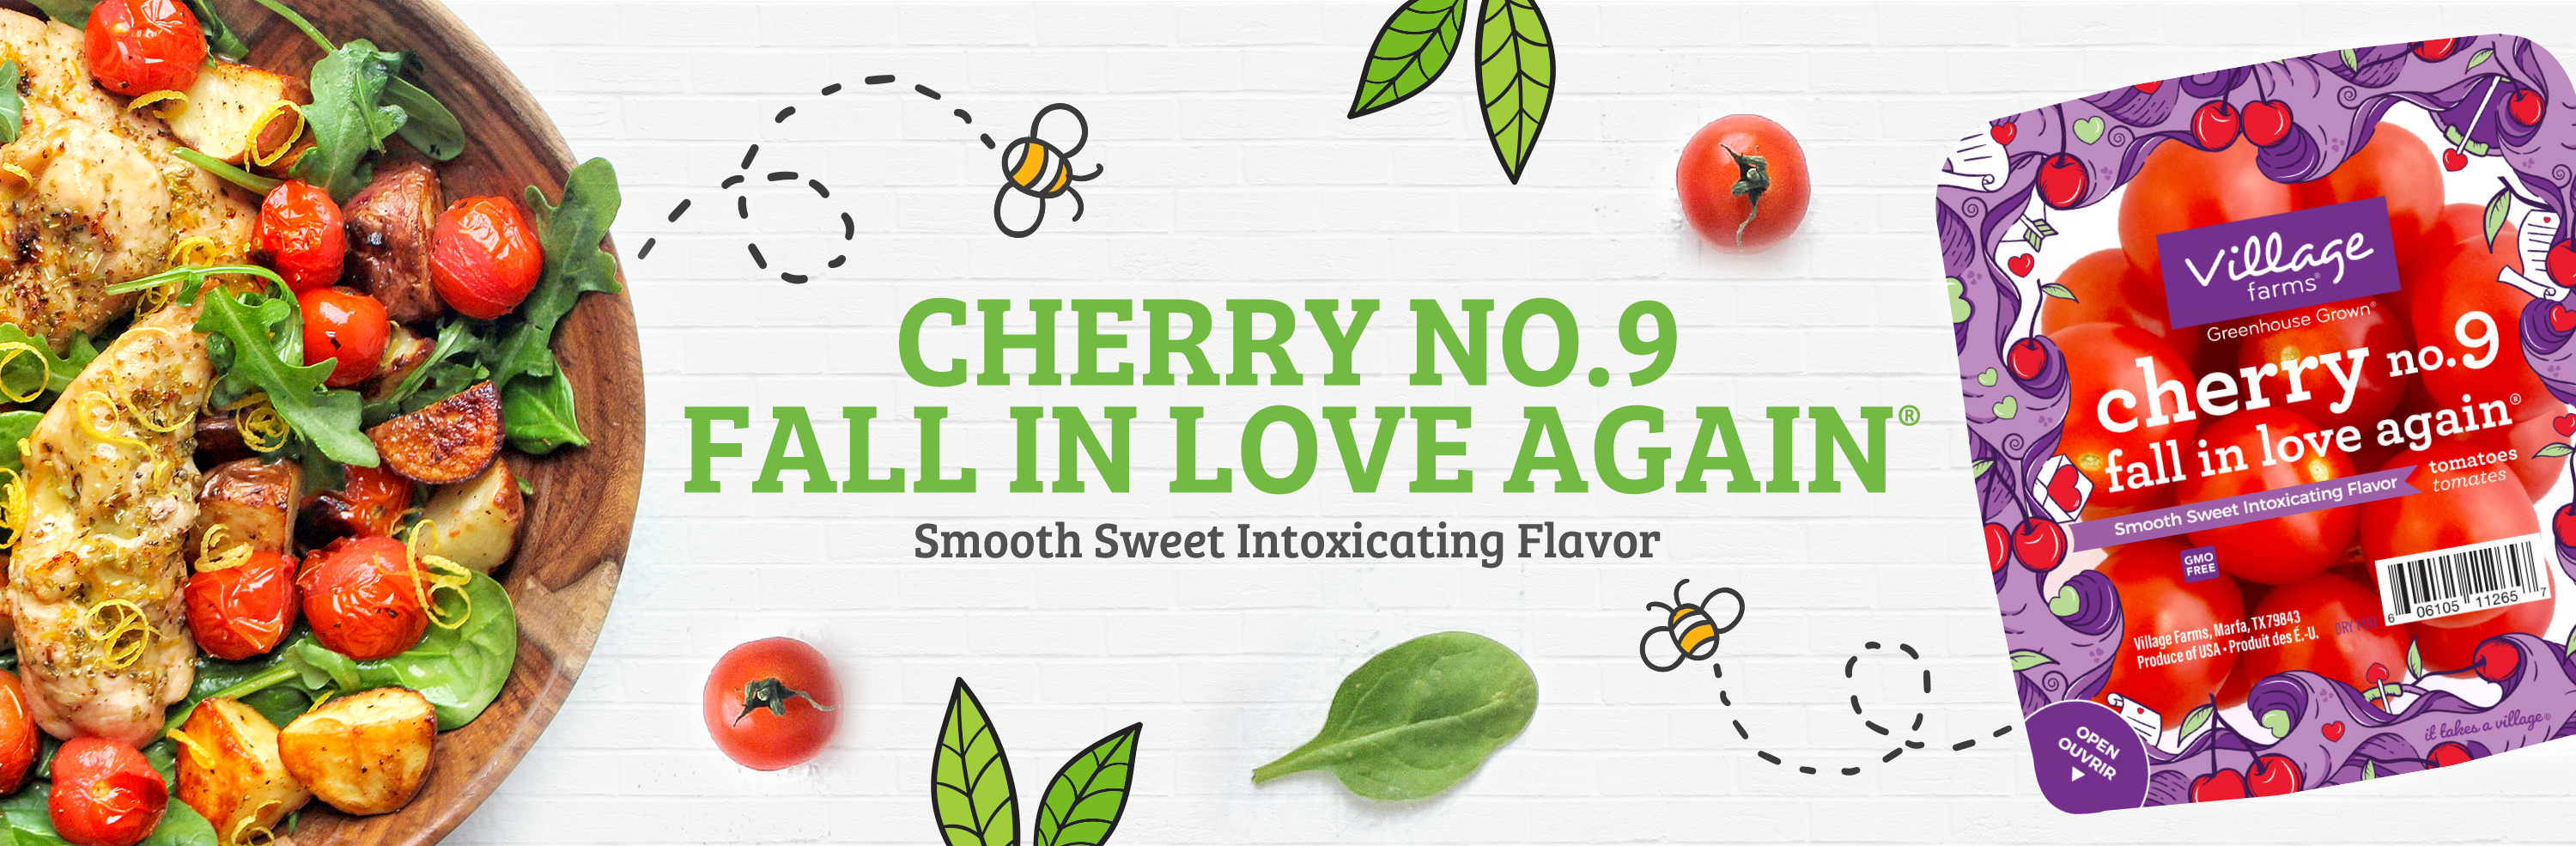 cherry no. 9 fall in love again® tomatoes